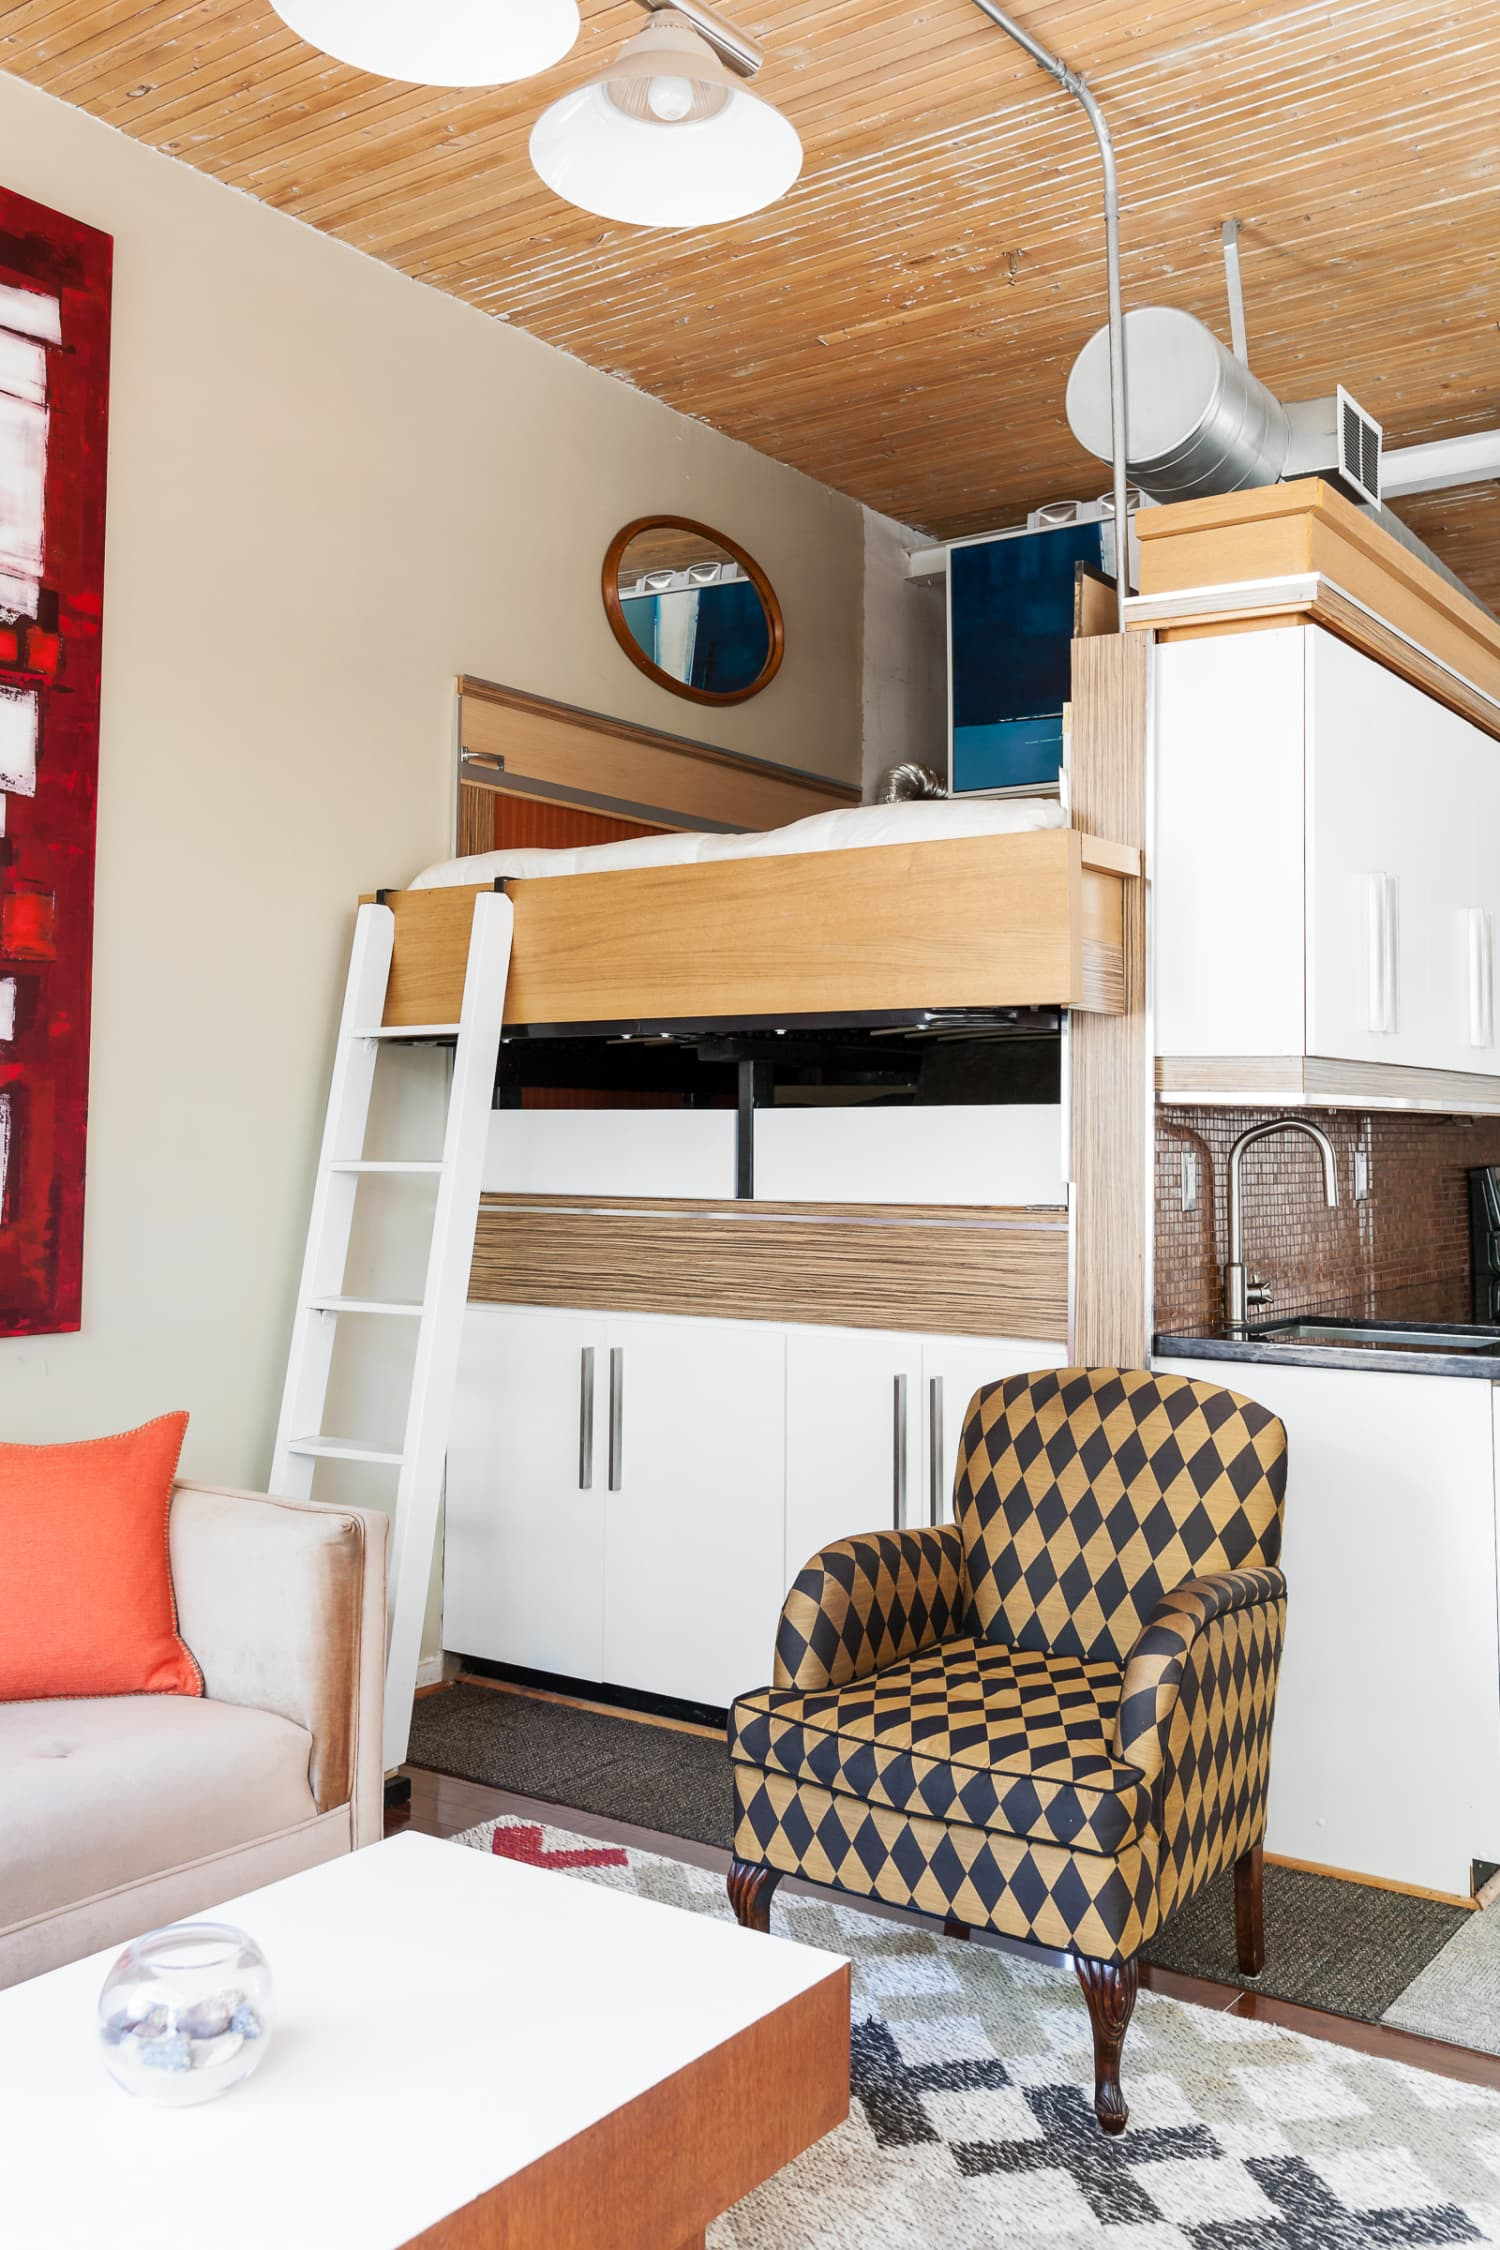 10 Full Size Modern Loft Beds for Adults | Apartment Therapy